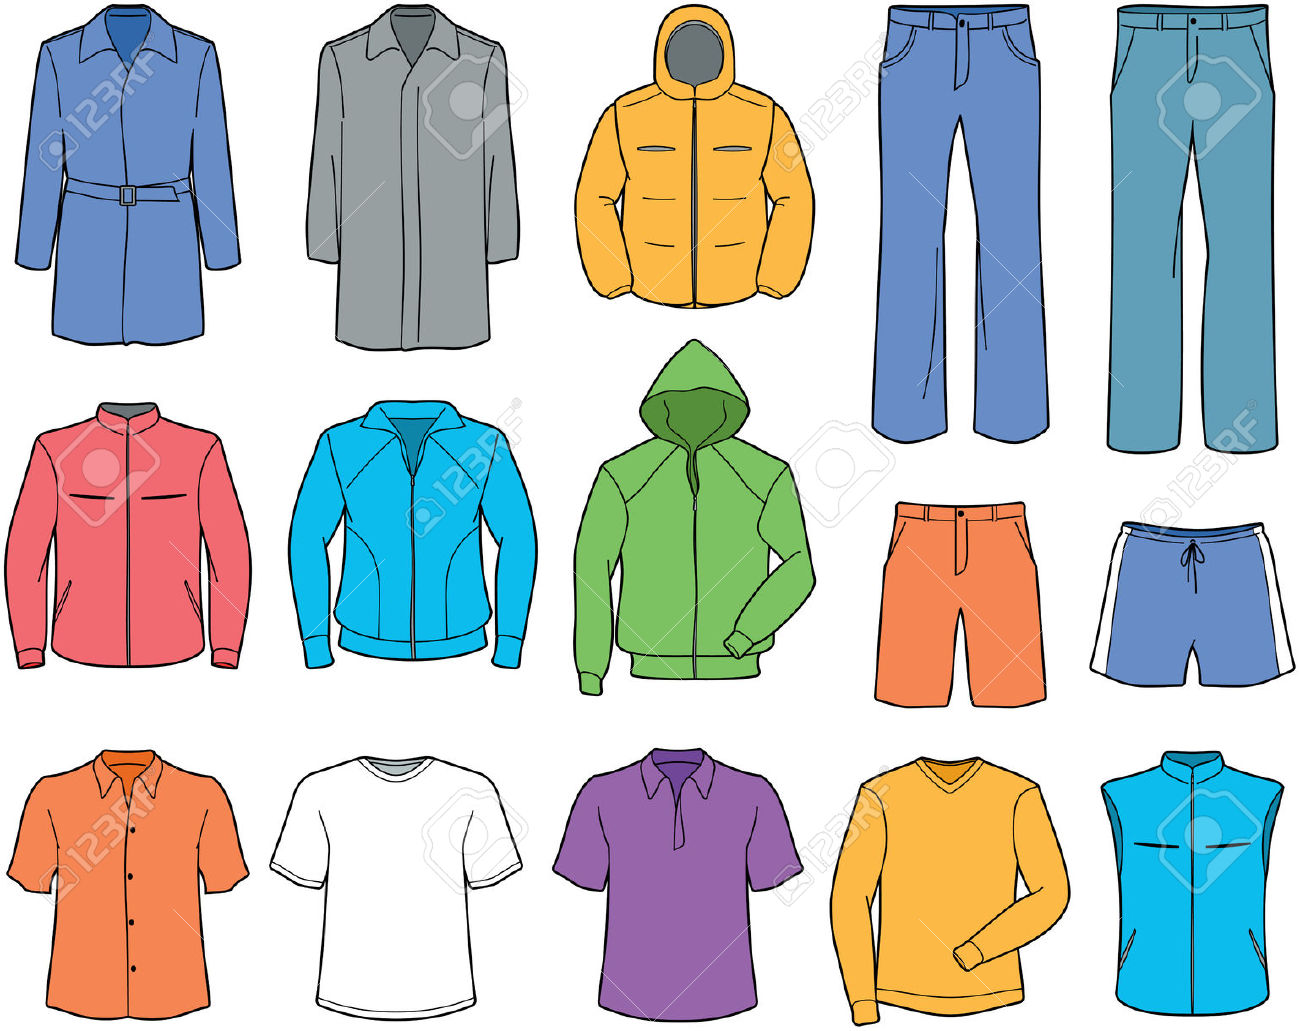 Free clothing clipart jpg black and white Clothes Clip Art   Clipart Panda - Free Clipart Images jpg black and white